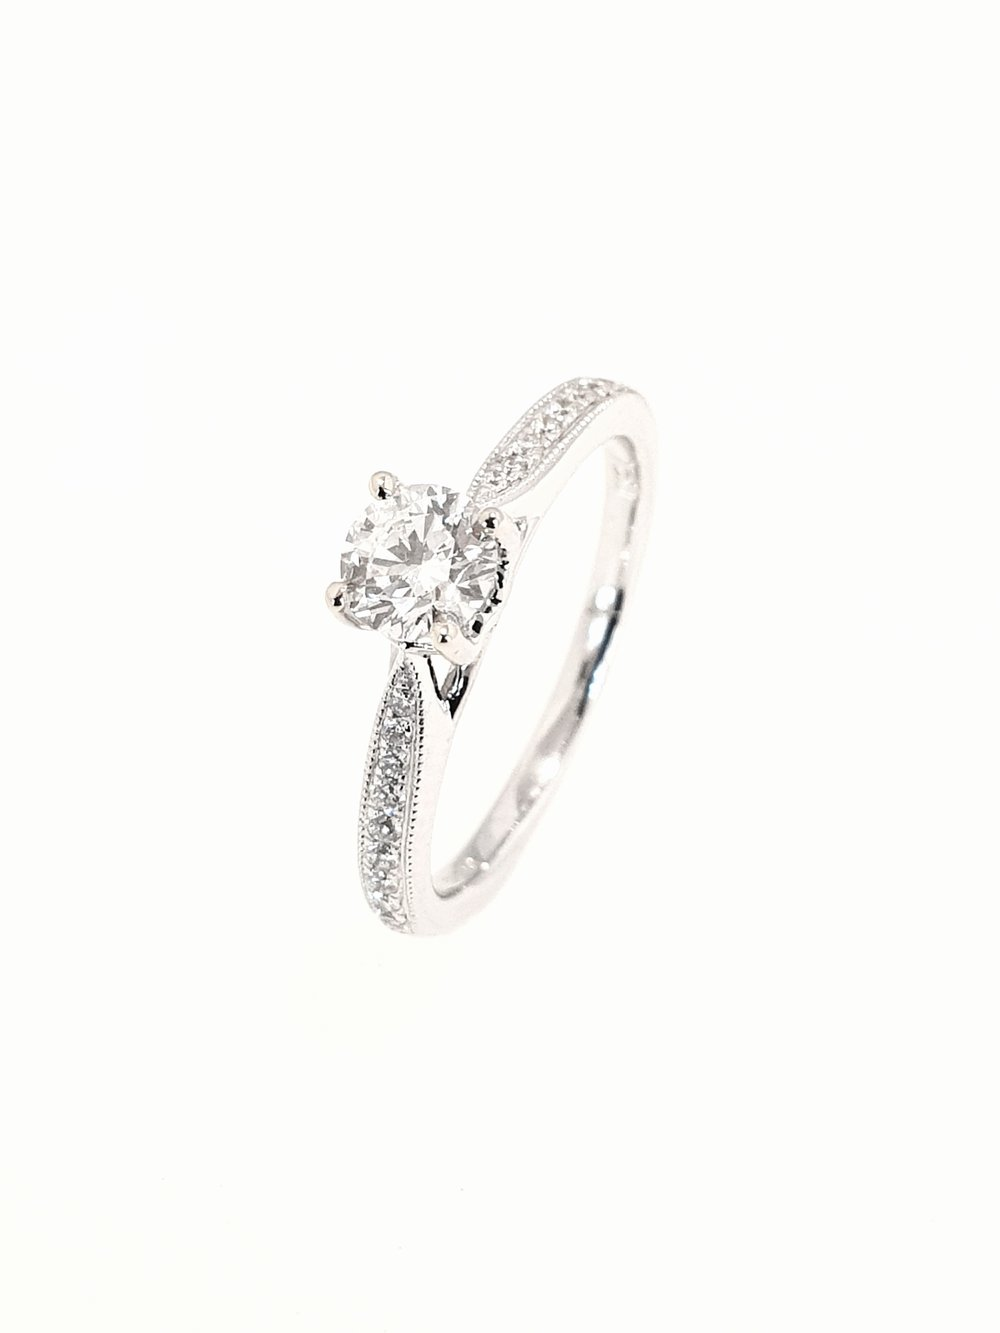 18ct White Gold Diamond Ring, Brilliant  .51ct, G, Si1  Stock Code: N8936  £2000